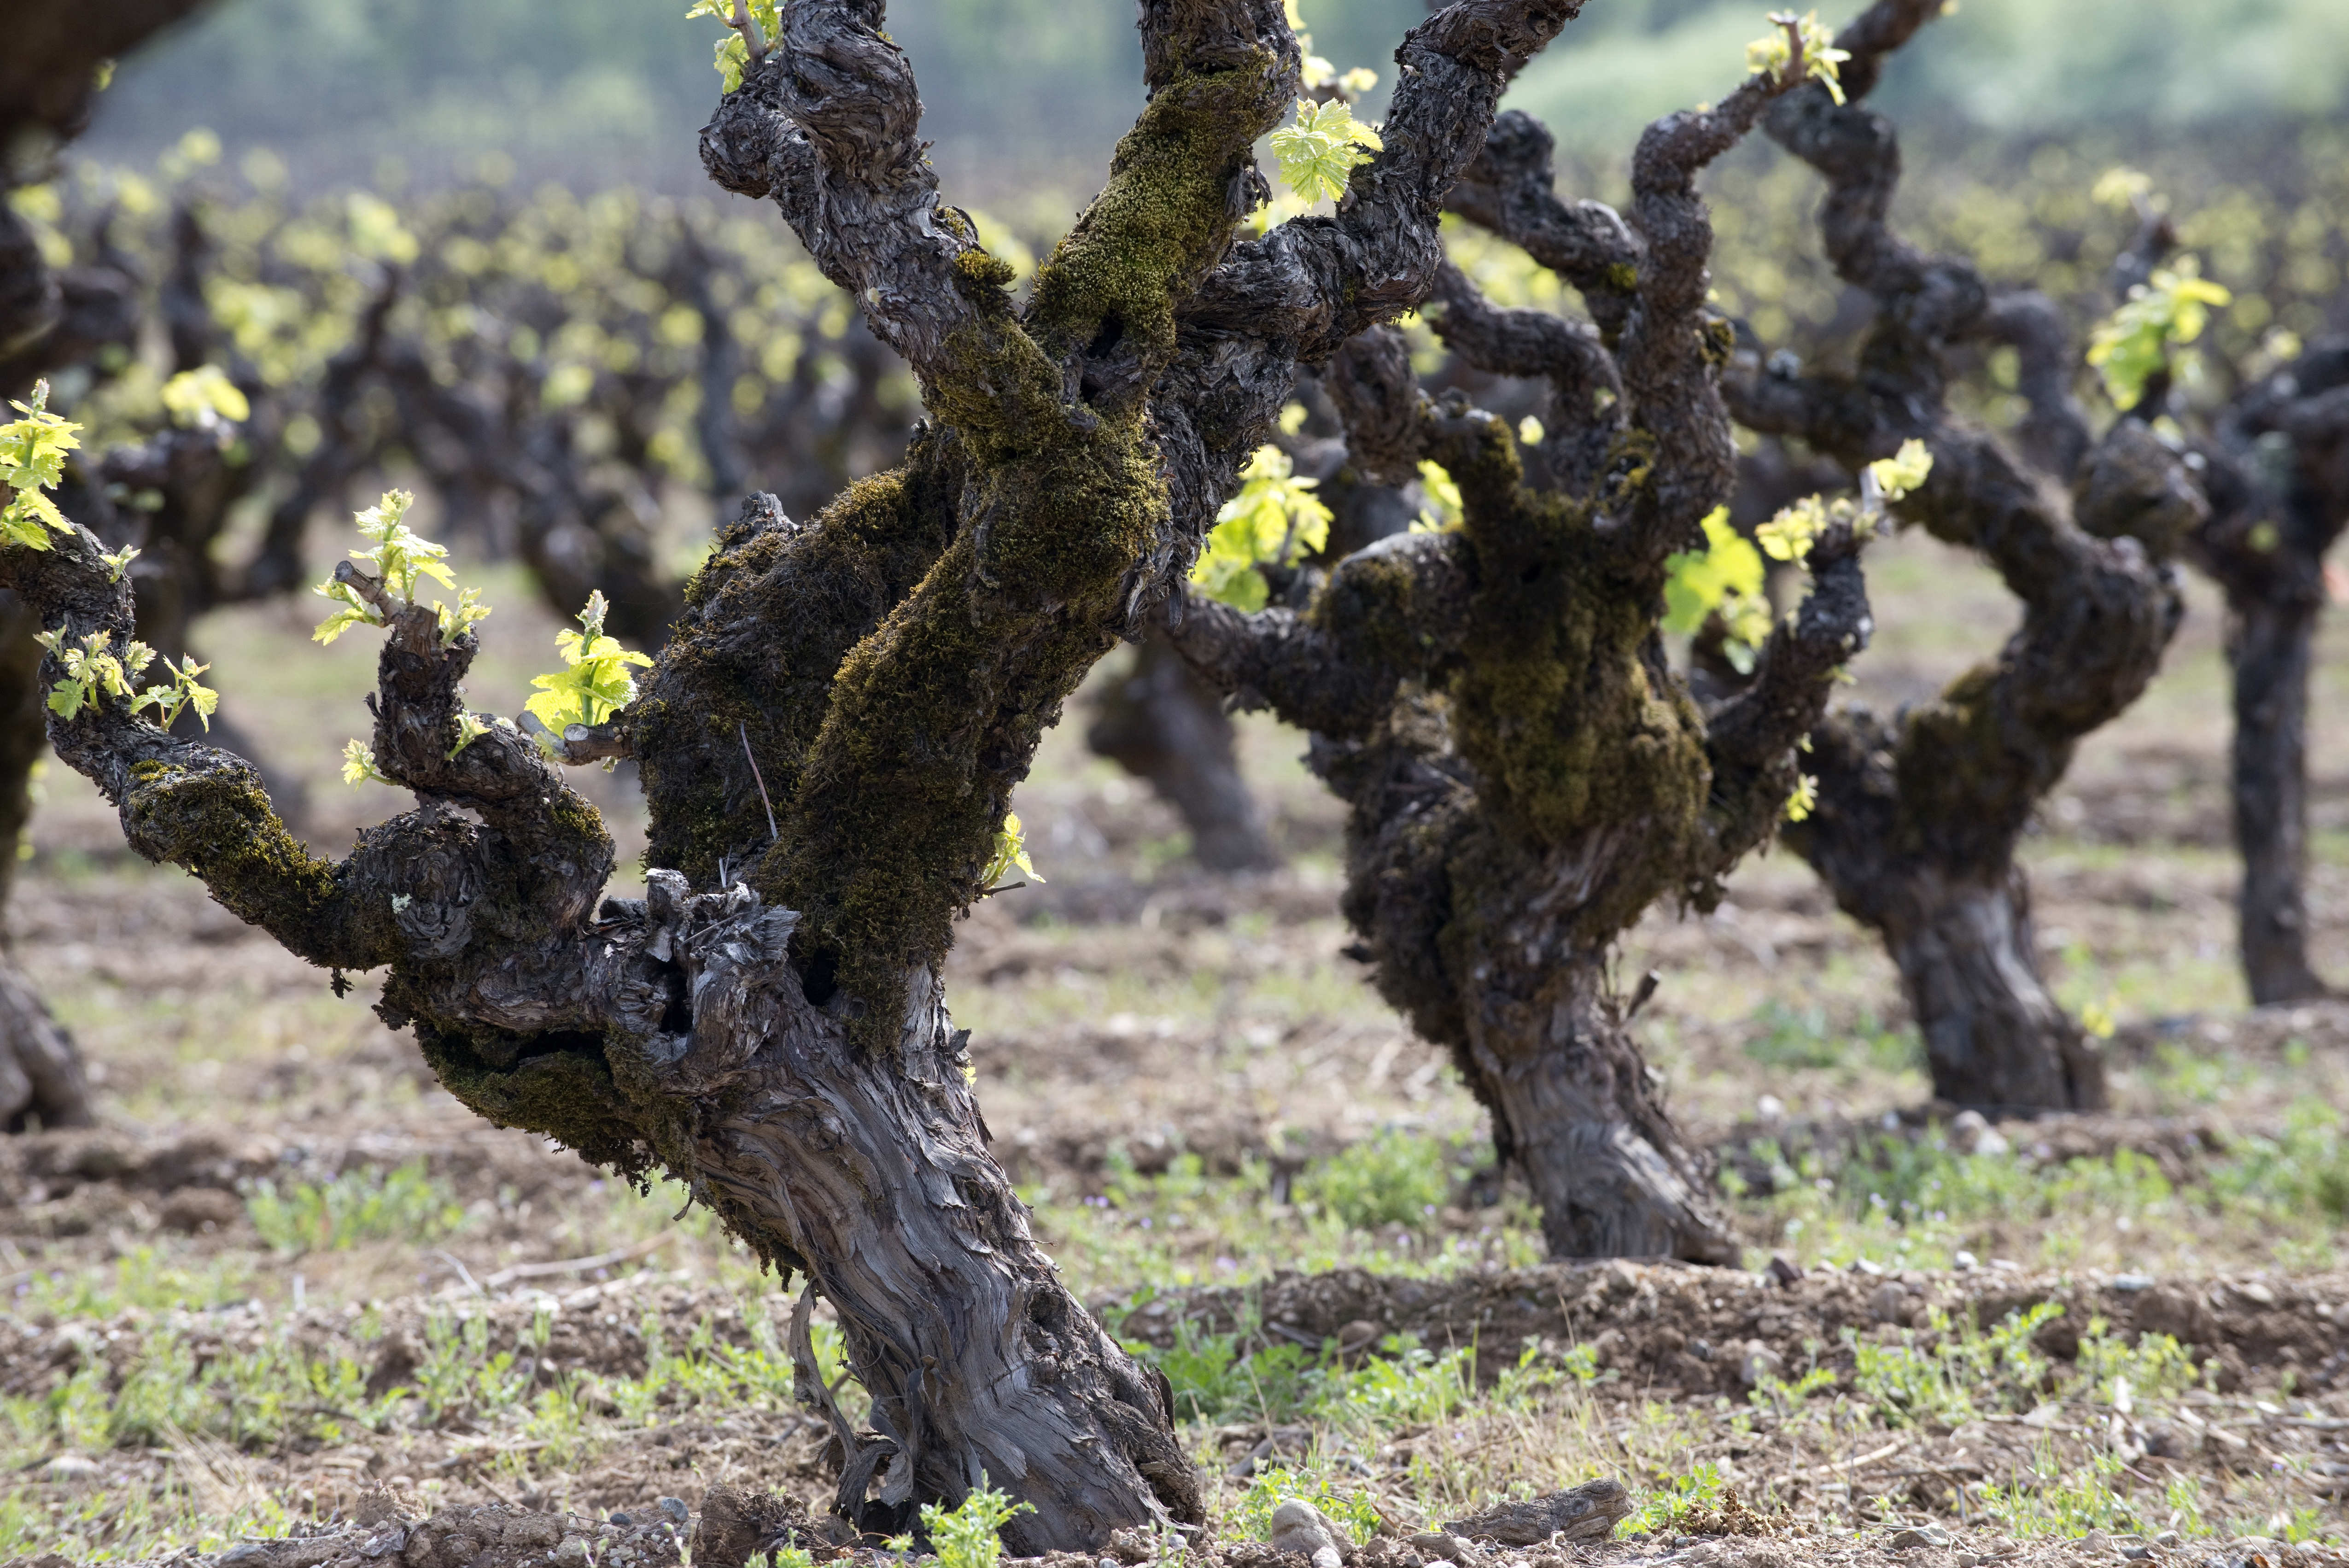 Old_vines_gnarly_wine_grapesGettyImages